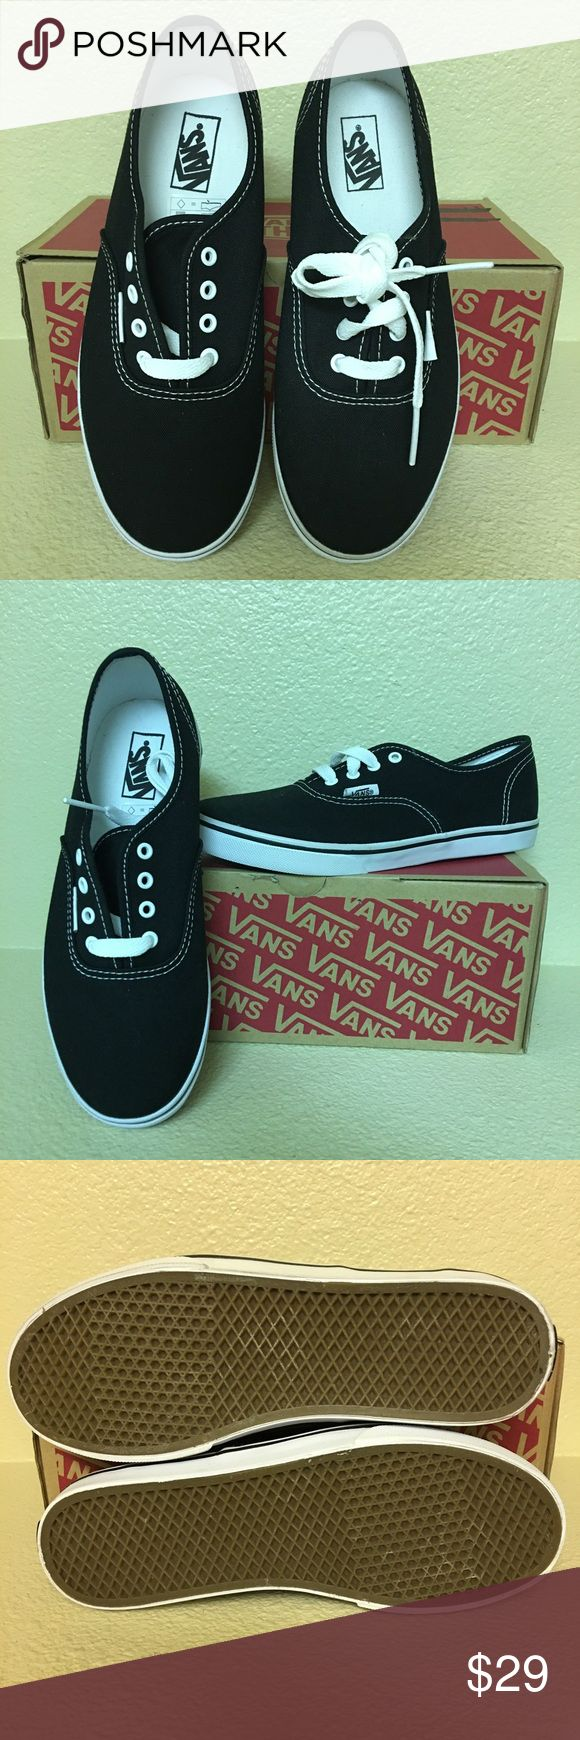 "Kids Authentic Lo Pro Vans 💕Price reduced for ""Dolla Days Sale,"" ends 12/12-Price is Firm, no offers will be accepted for this item during the sale. 💕 Brand new in box. Vans Shoes Sneakers"